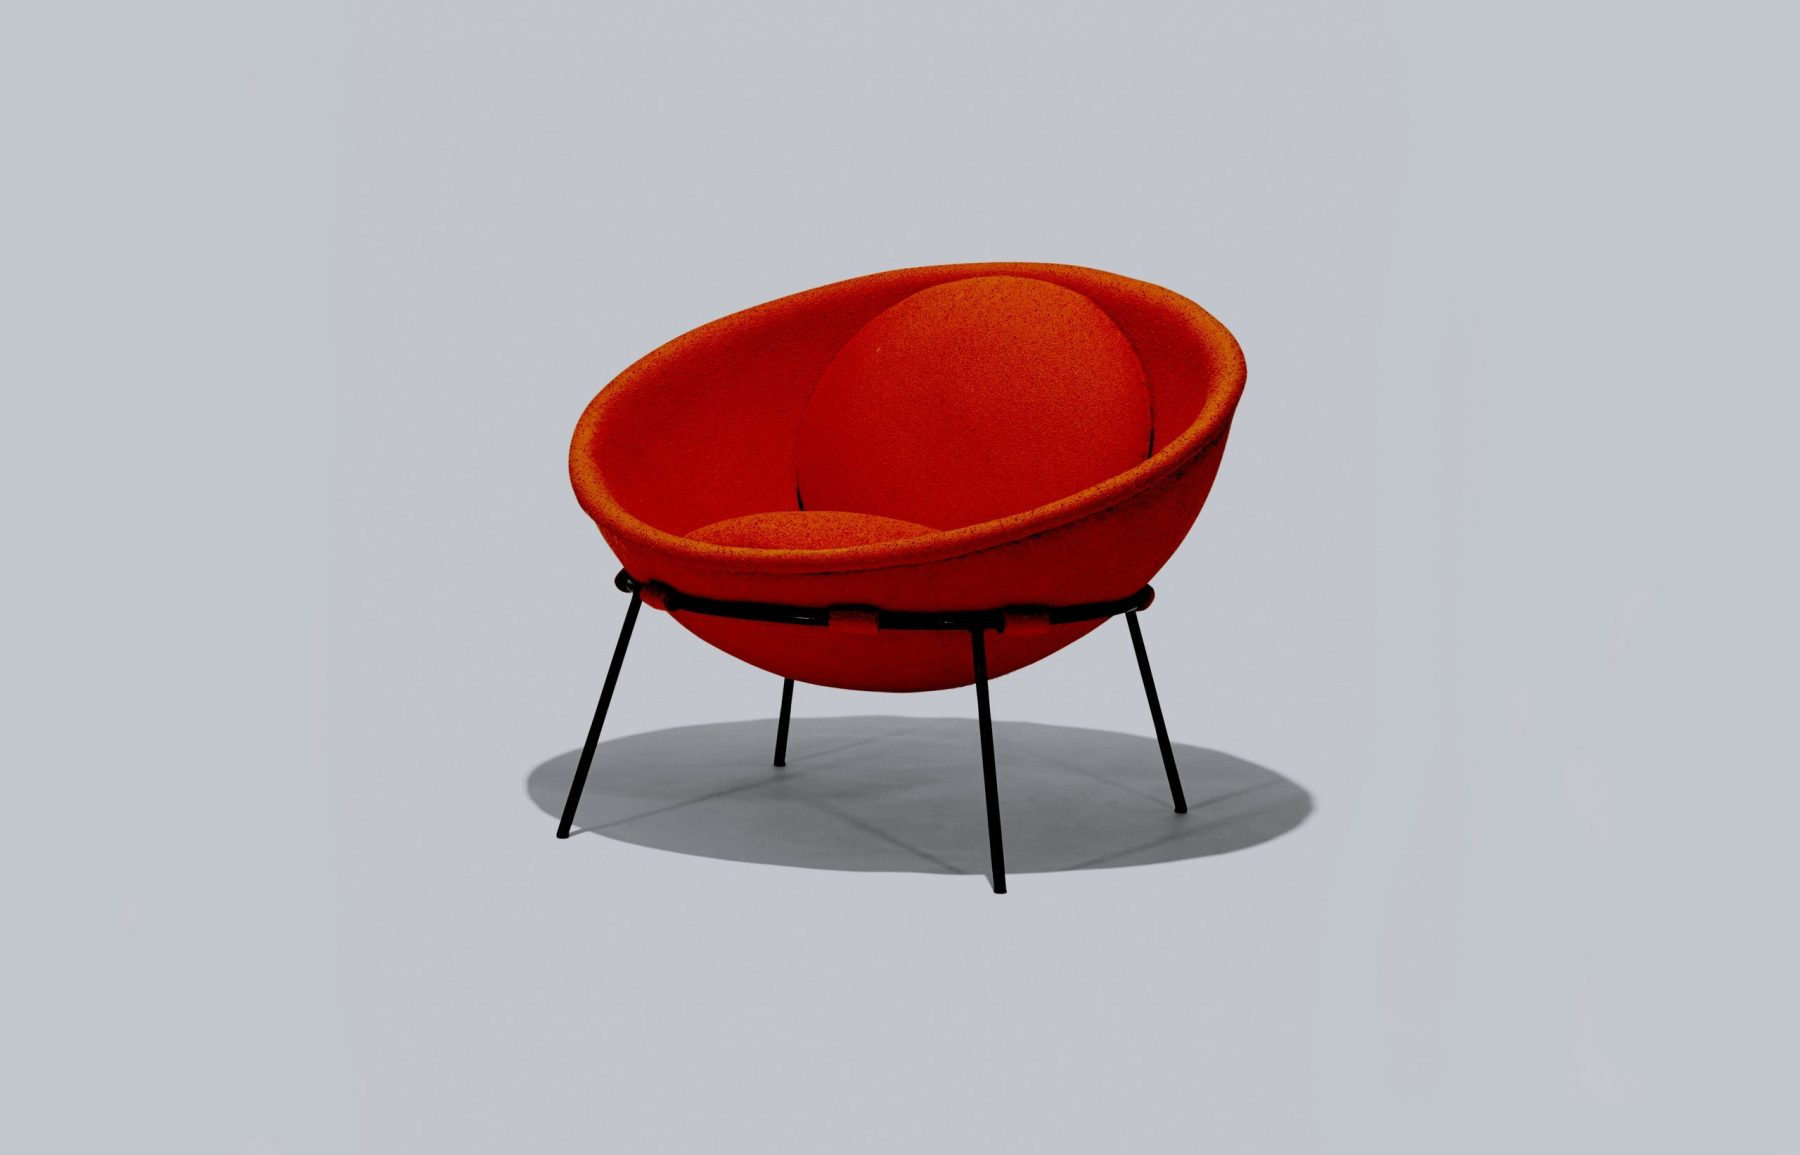 Lina Bo Bardi Bowl chair at Casati Gallery